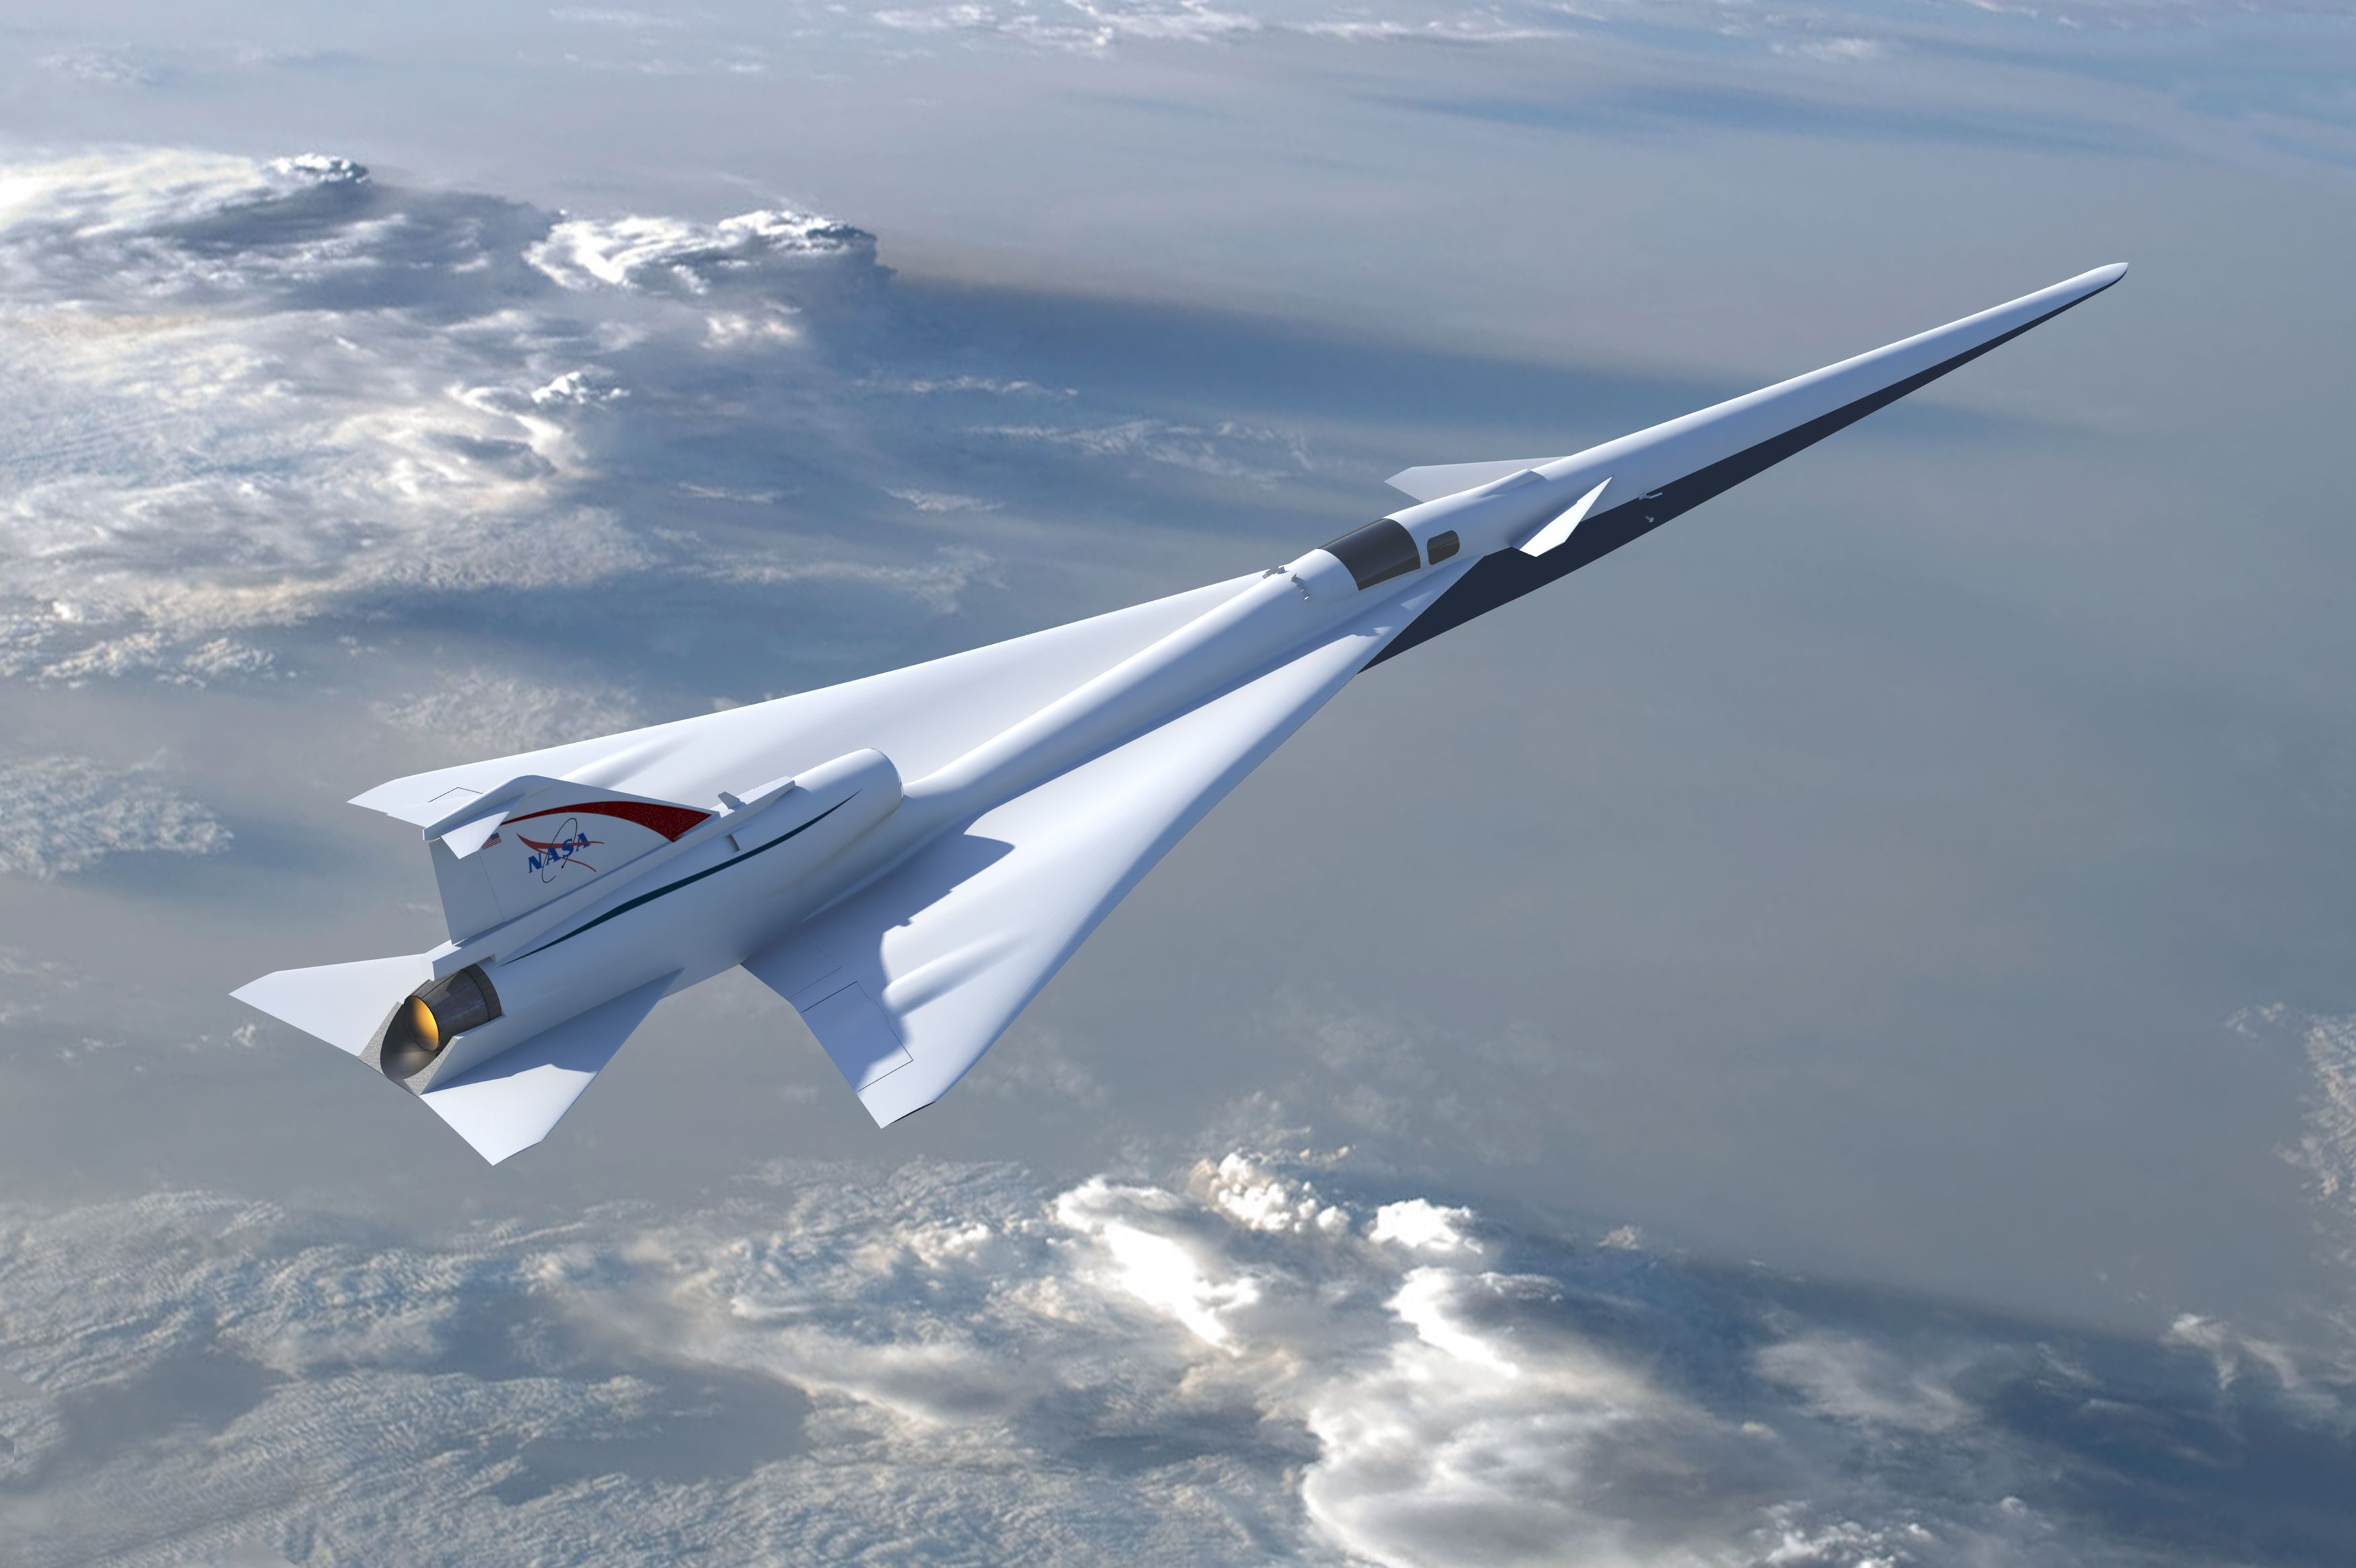 NASA To Fly Super-Quiet Supersonic Jets Over U.S. Cities 'Within Three Years'